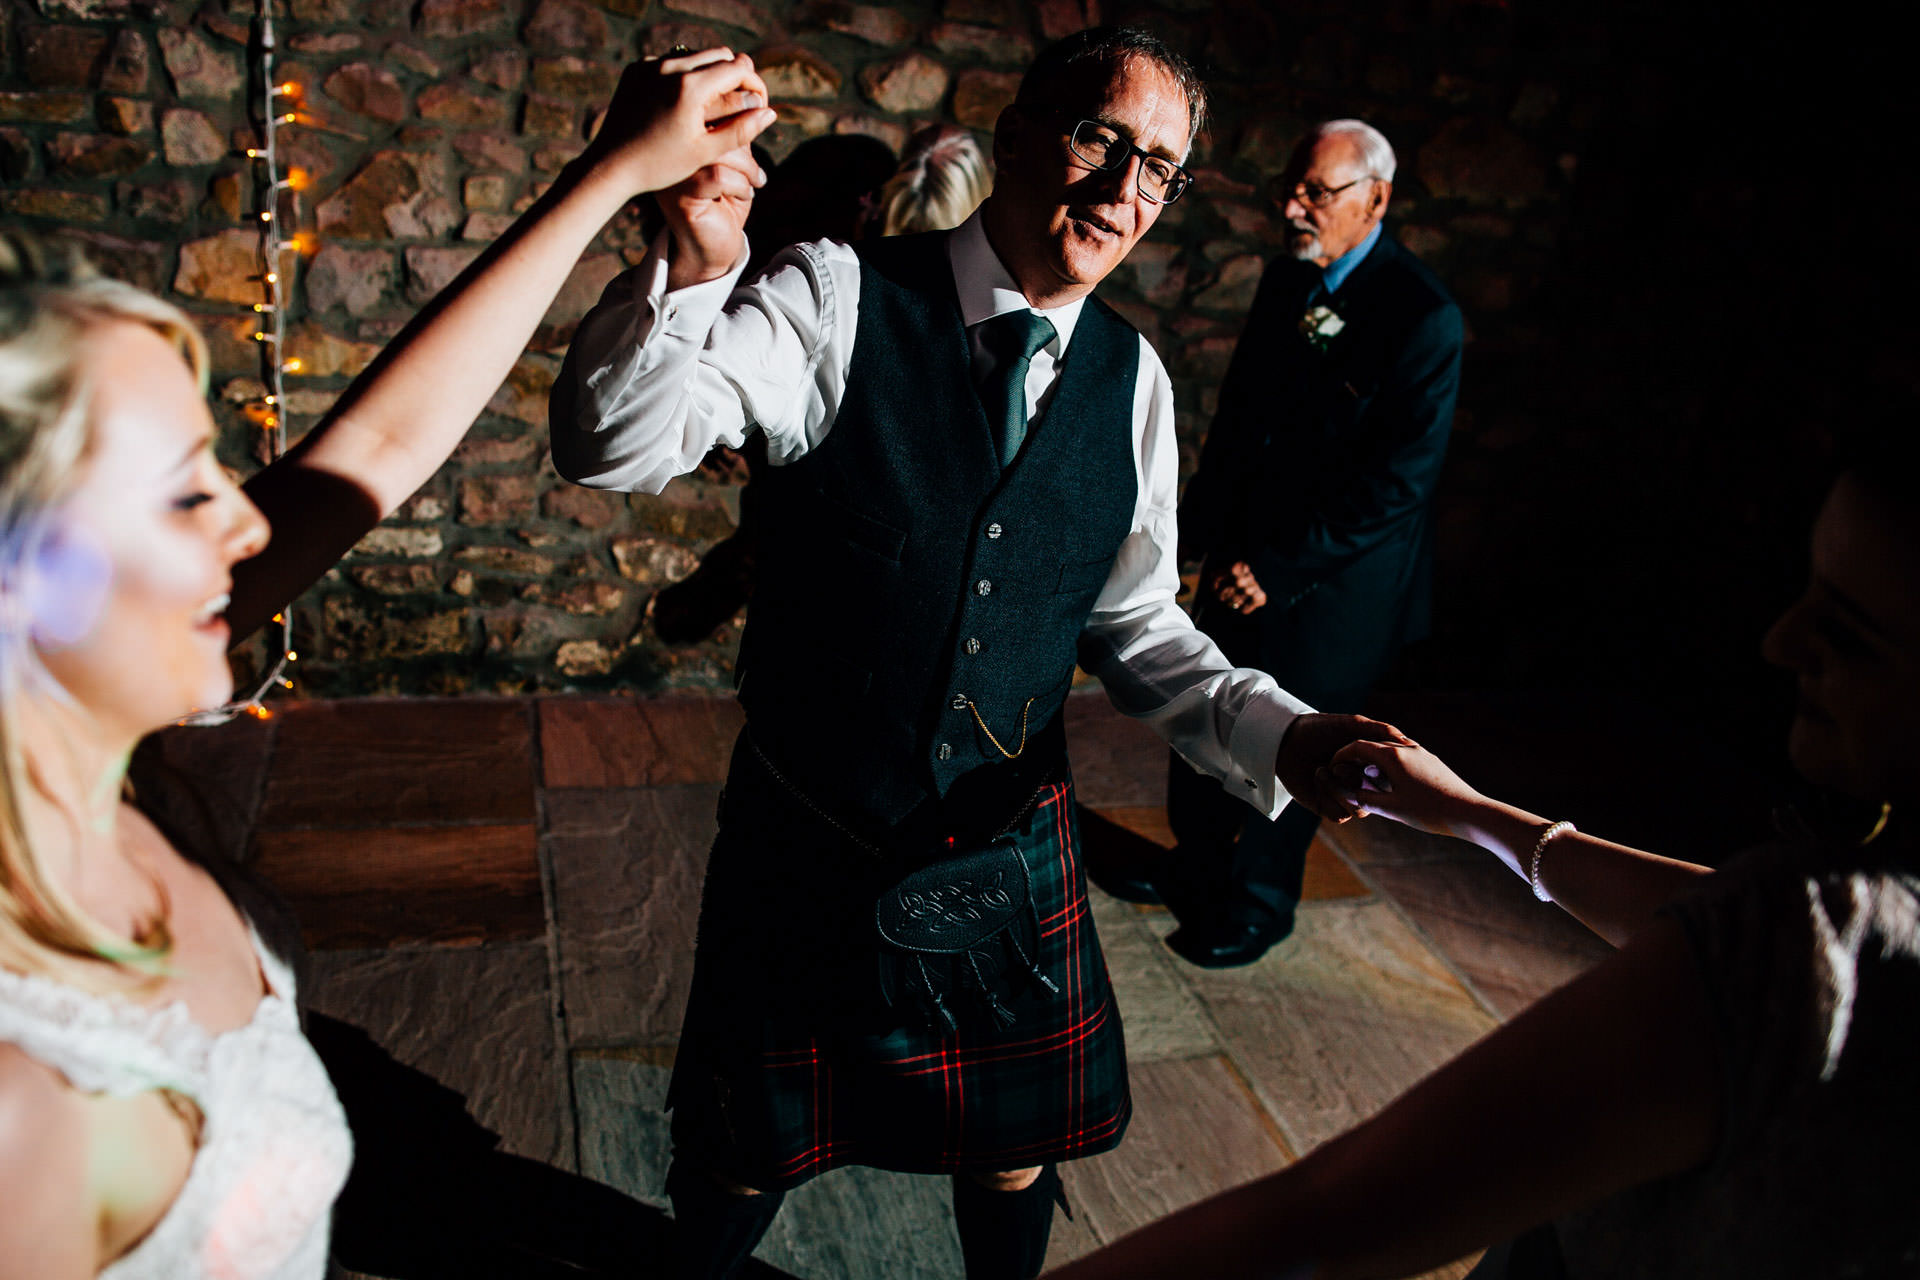 Best wedding photography 2016 - guests dancing in speeches